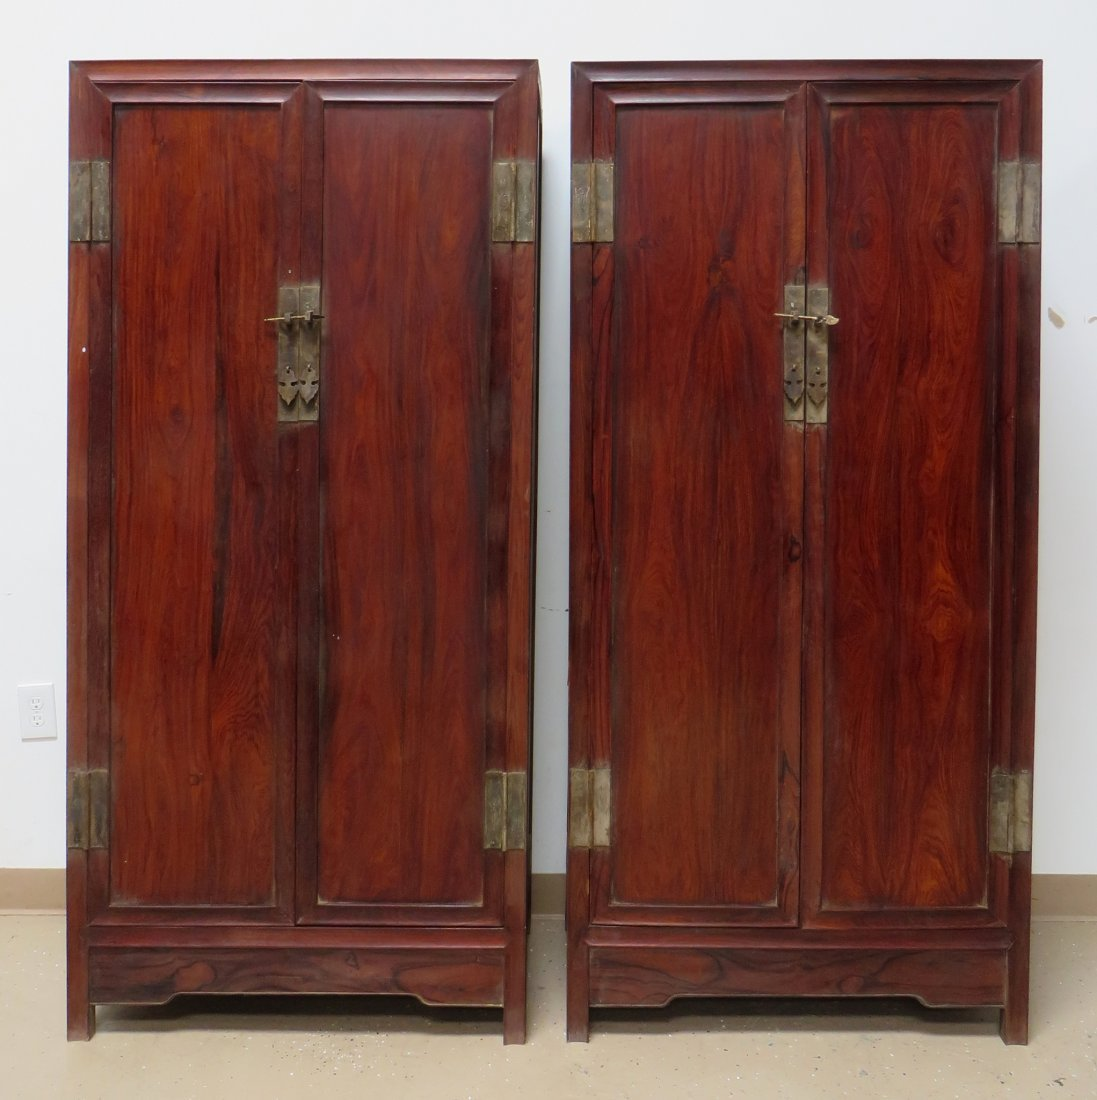 PAIR OF CHINESE HUANGHUALI NOODLE CABINETS